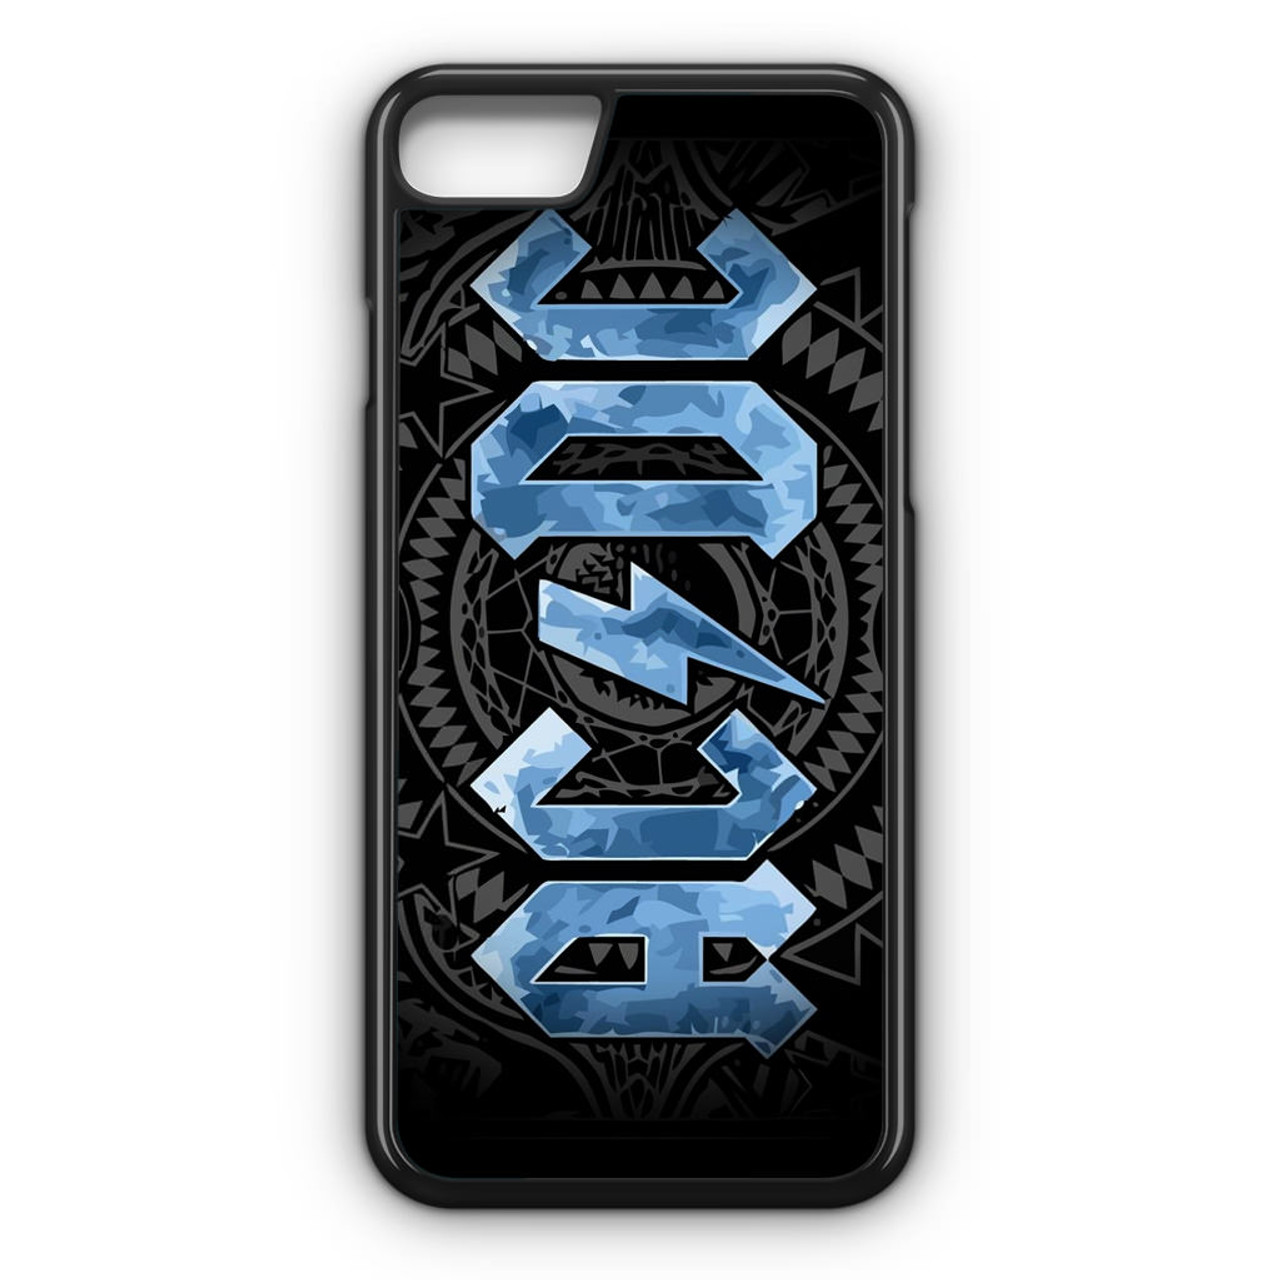 acdc iphone 7 case